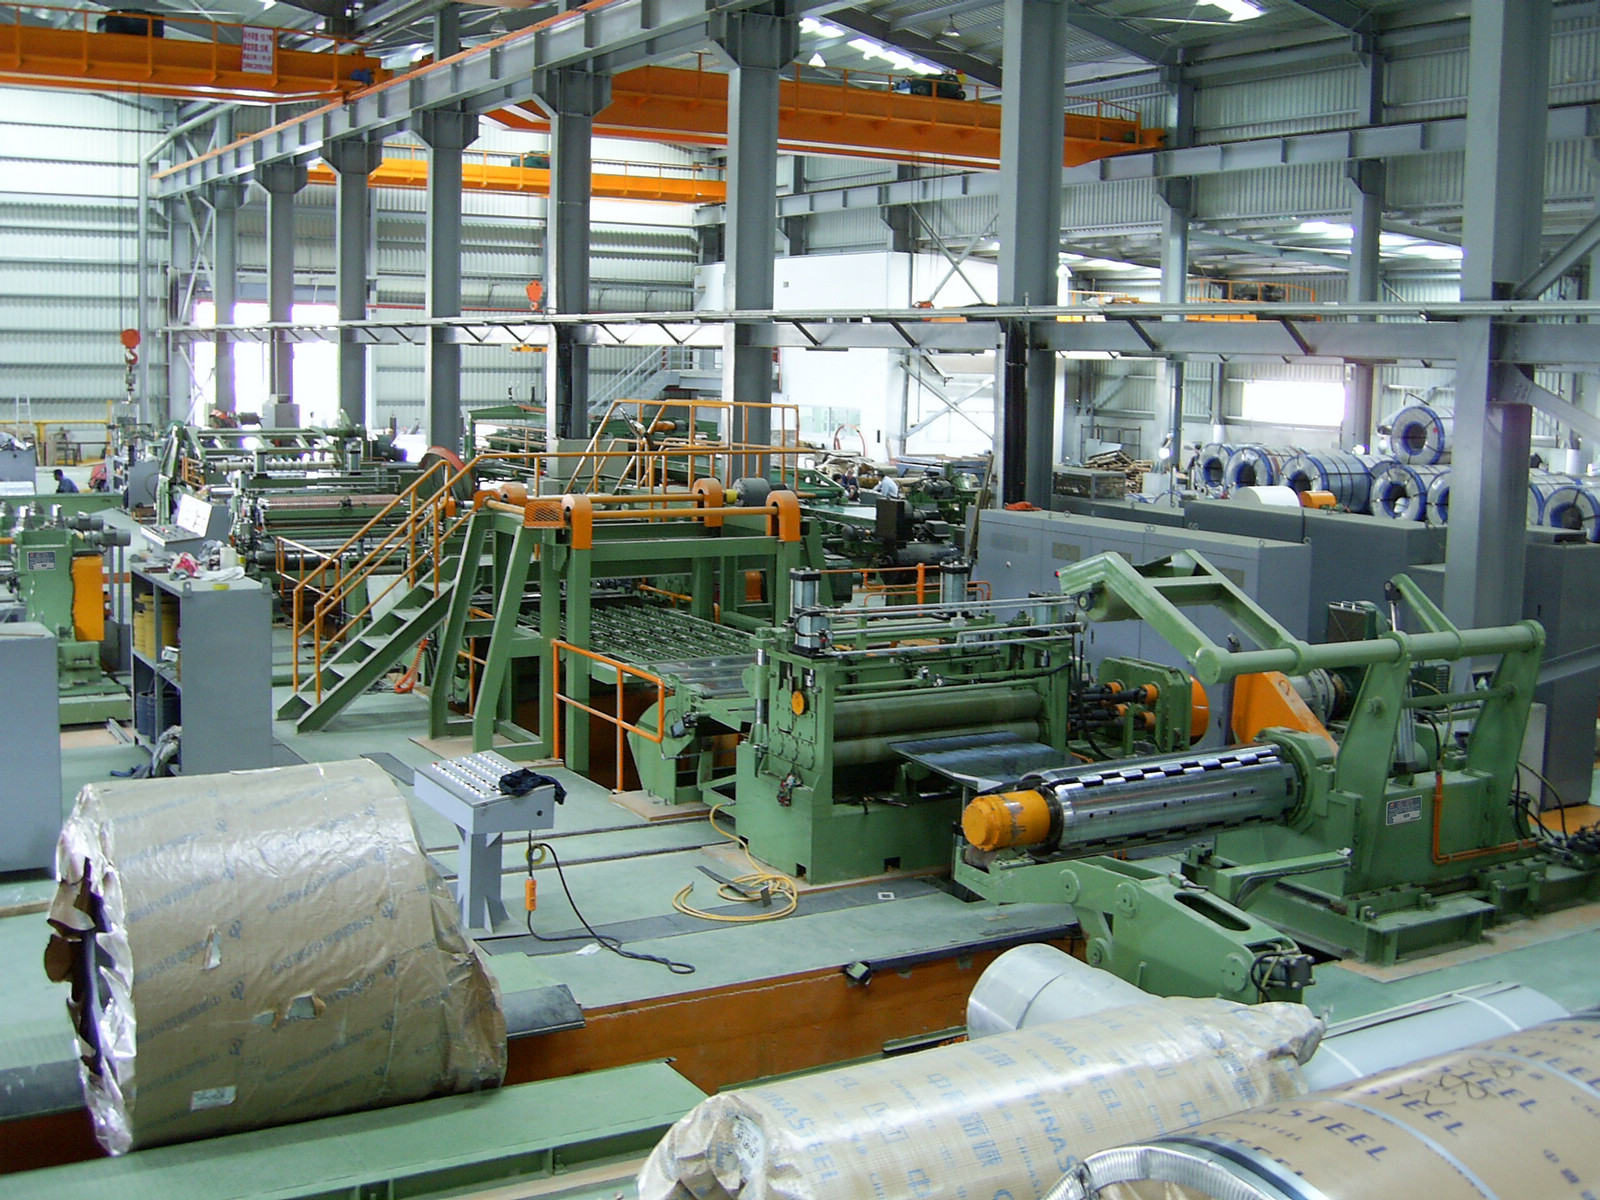 Automatic Steel Coil Slitting Line - SF-160 / SF-180 / SF-220 / SF-250 / SF-280. Slitting Machine, Slitting Lines, Automatic Steel Sheet Slitting Machine